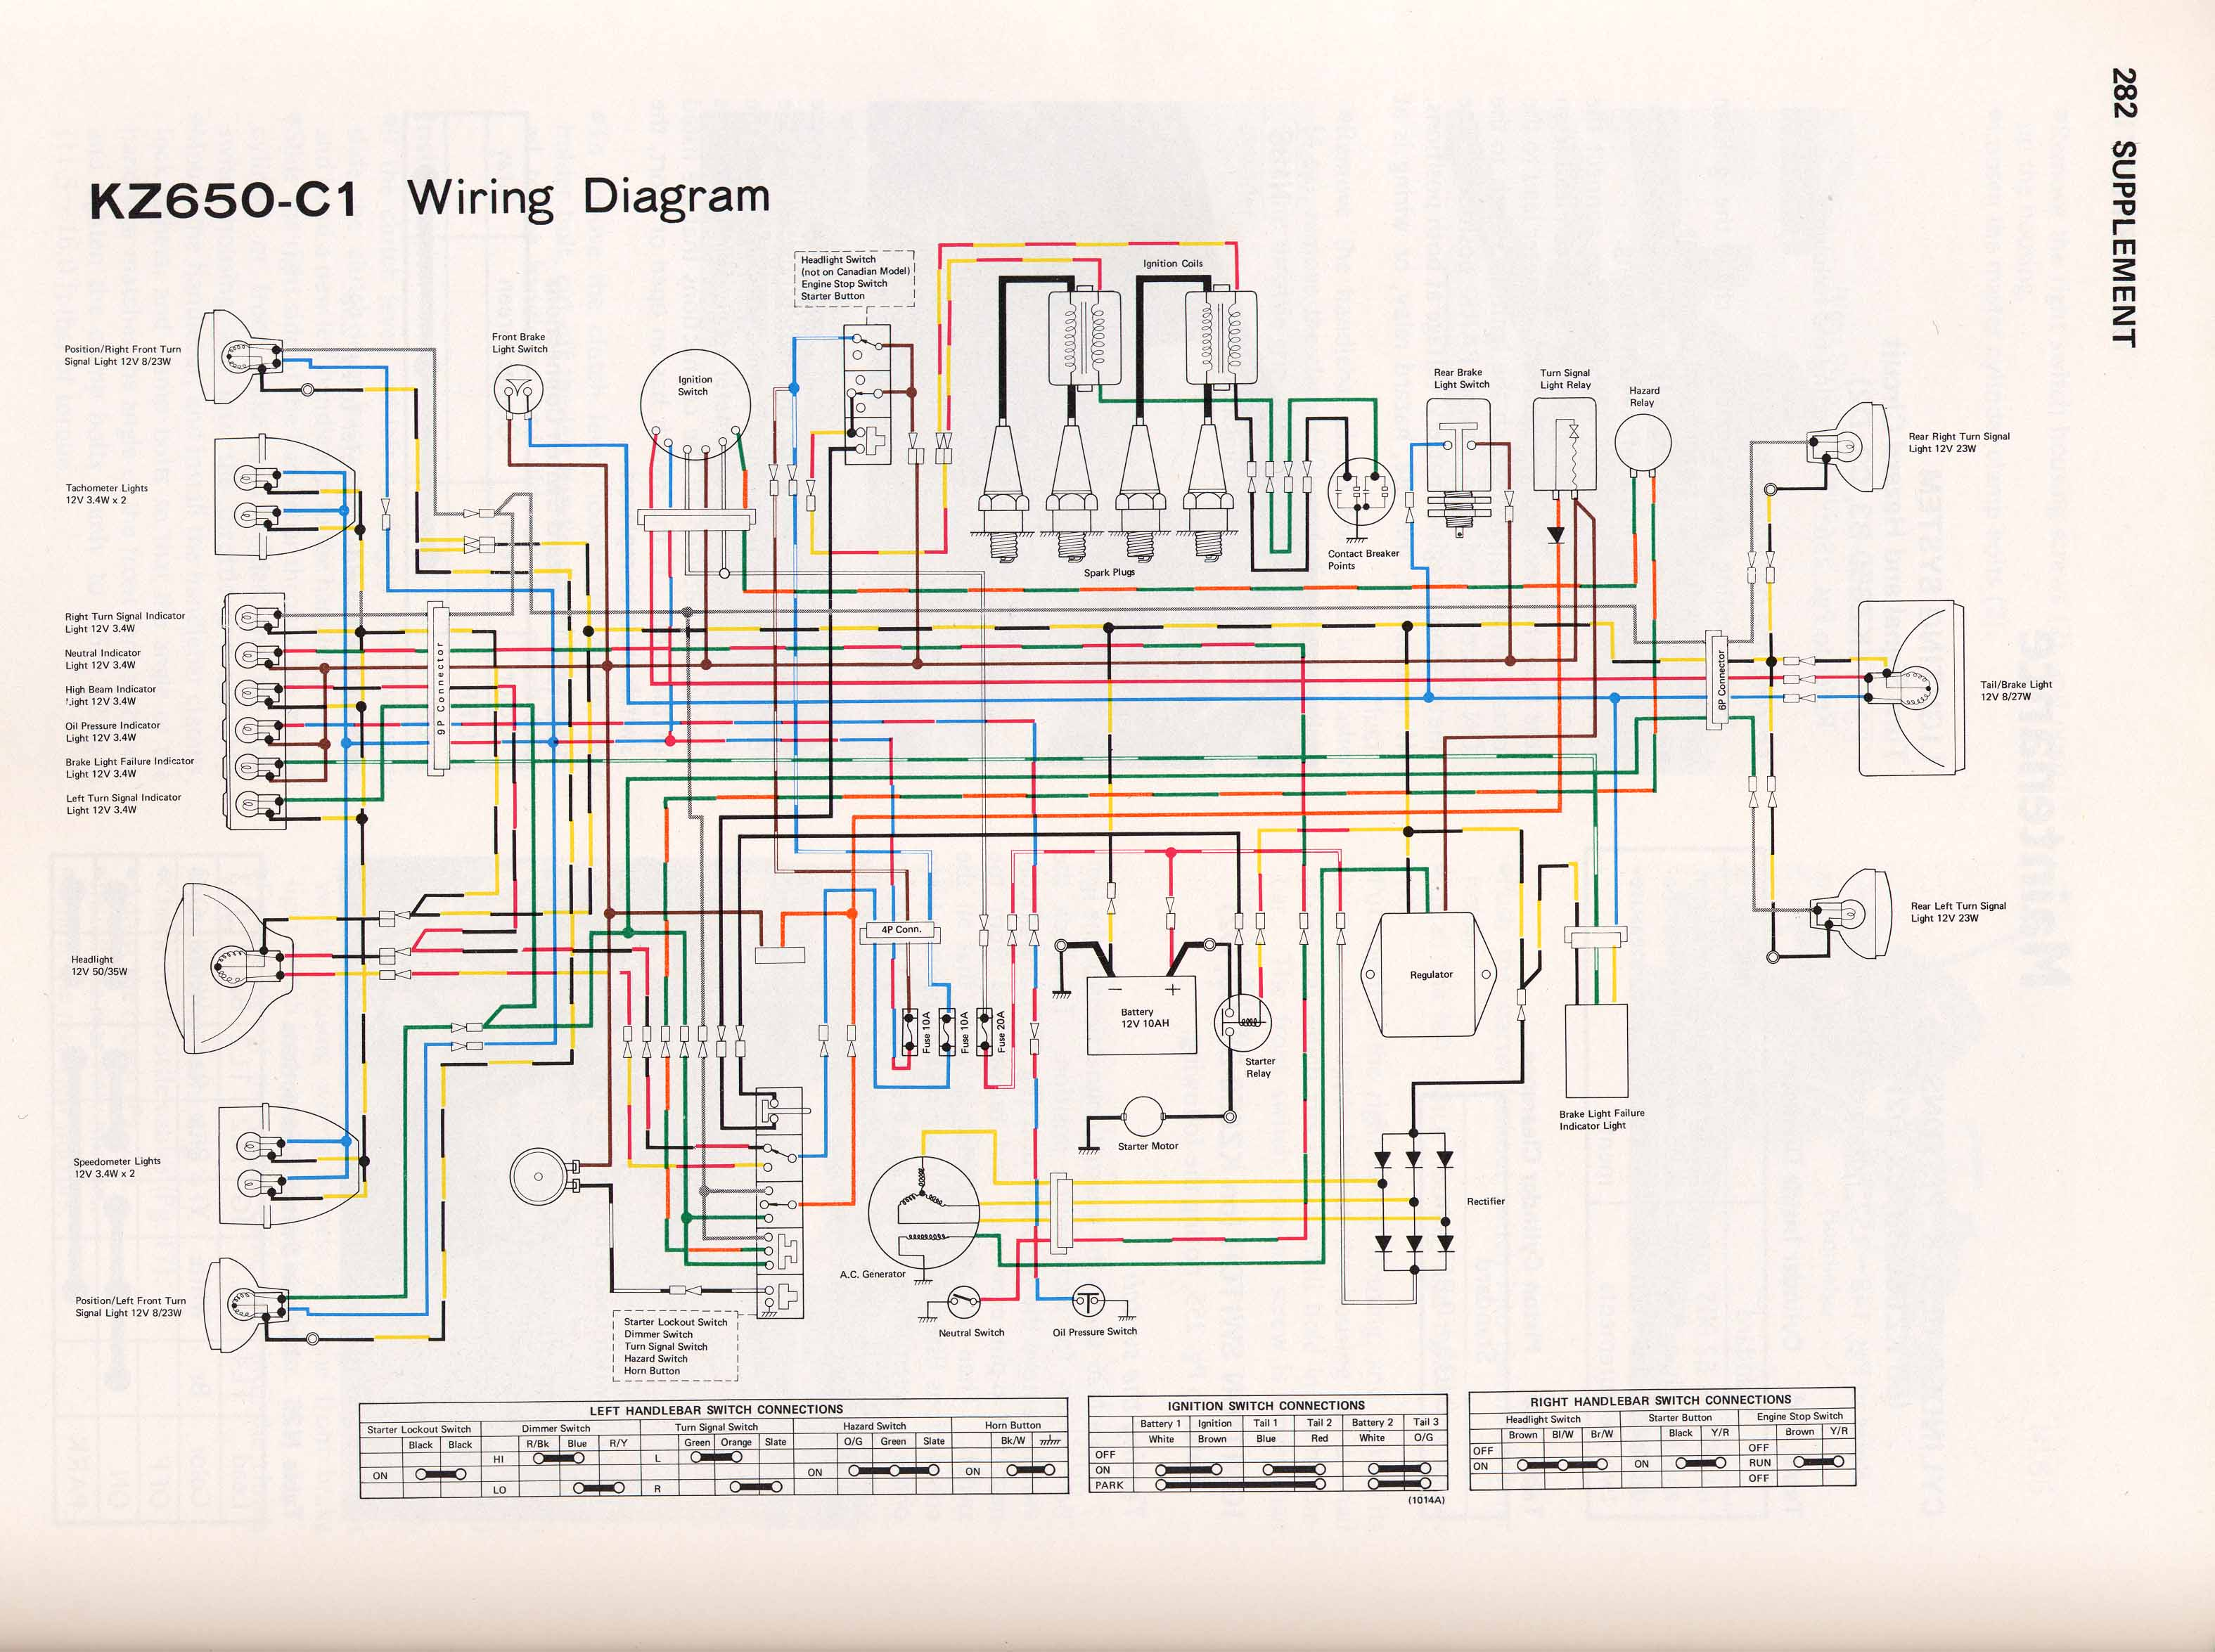 KZ650 C1 kz650 info wiring diagrams 81 kz440 wiring diagram at bakdesigns.co